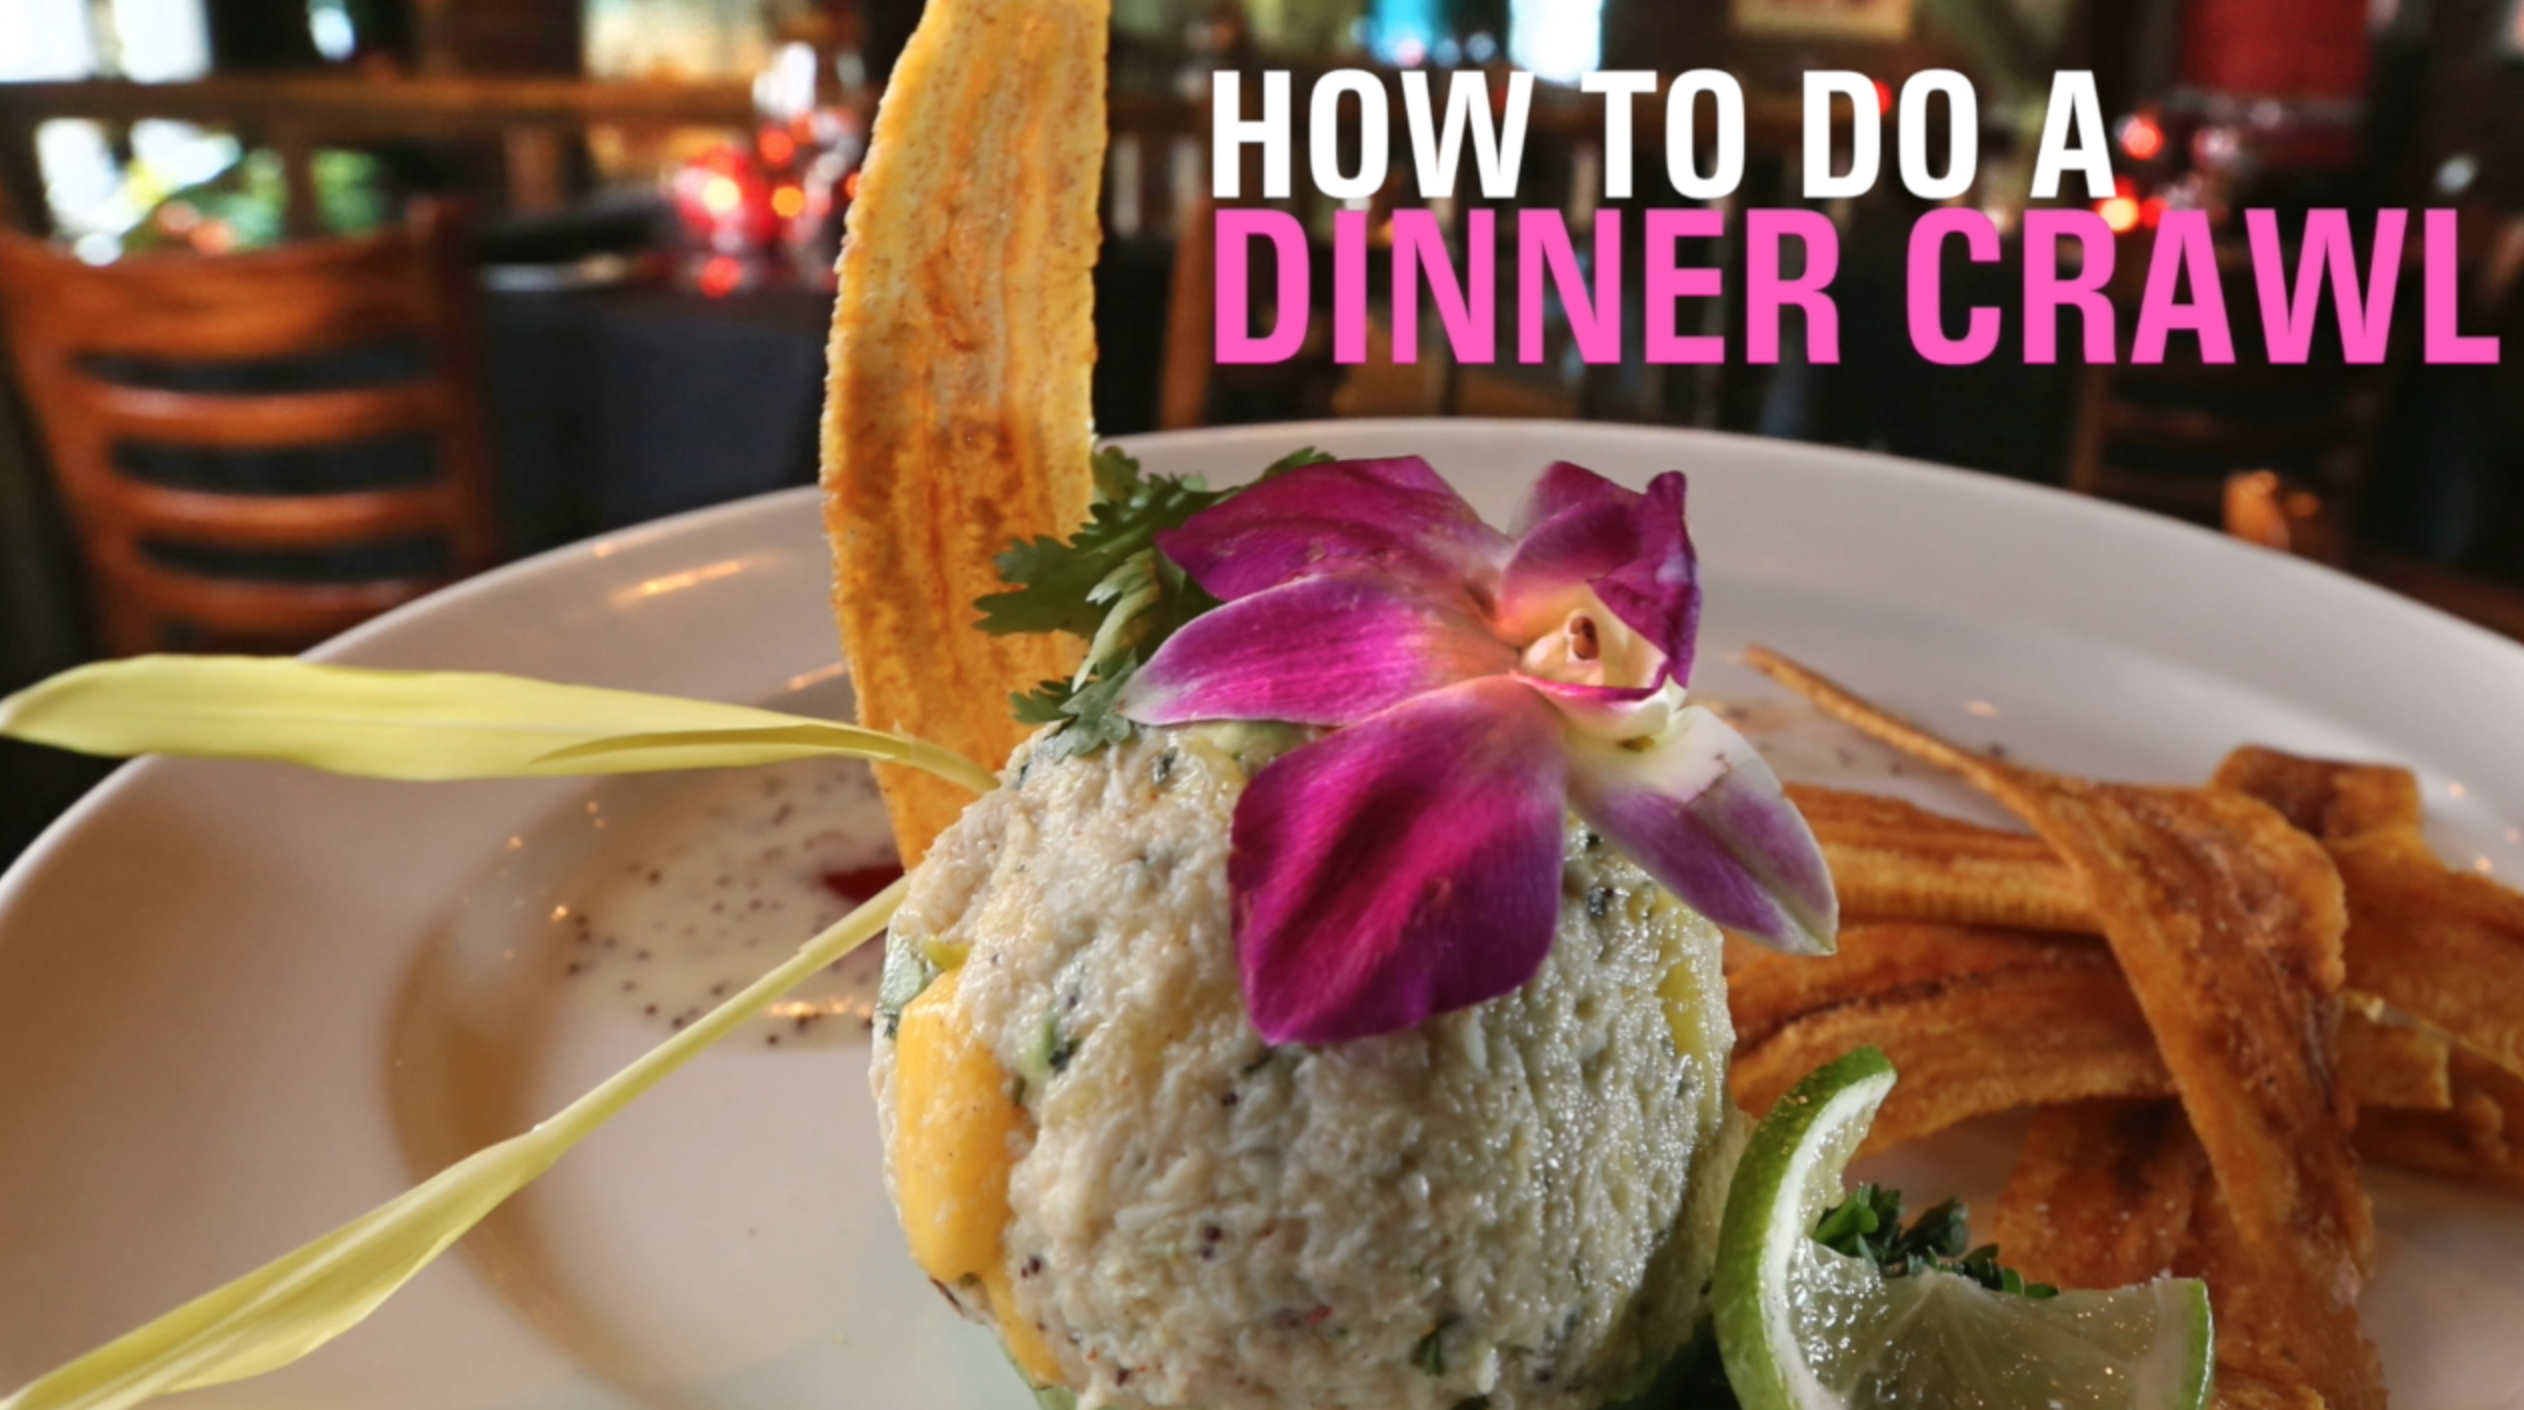 WATCH: How to do a dinner crawl